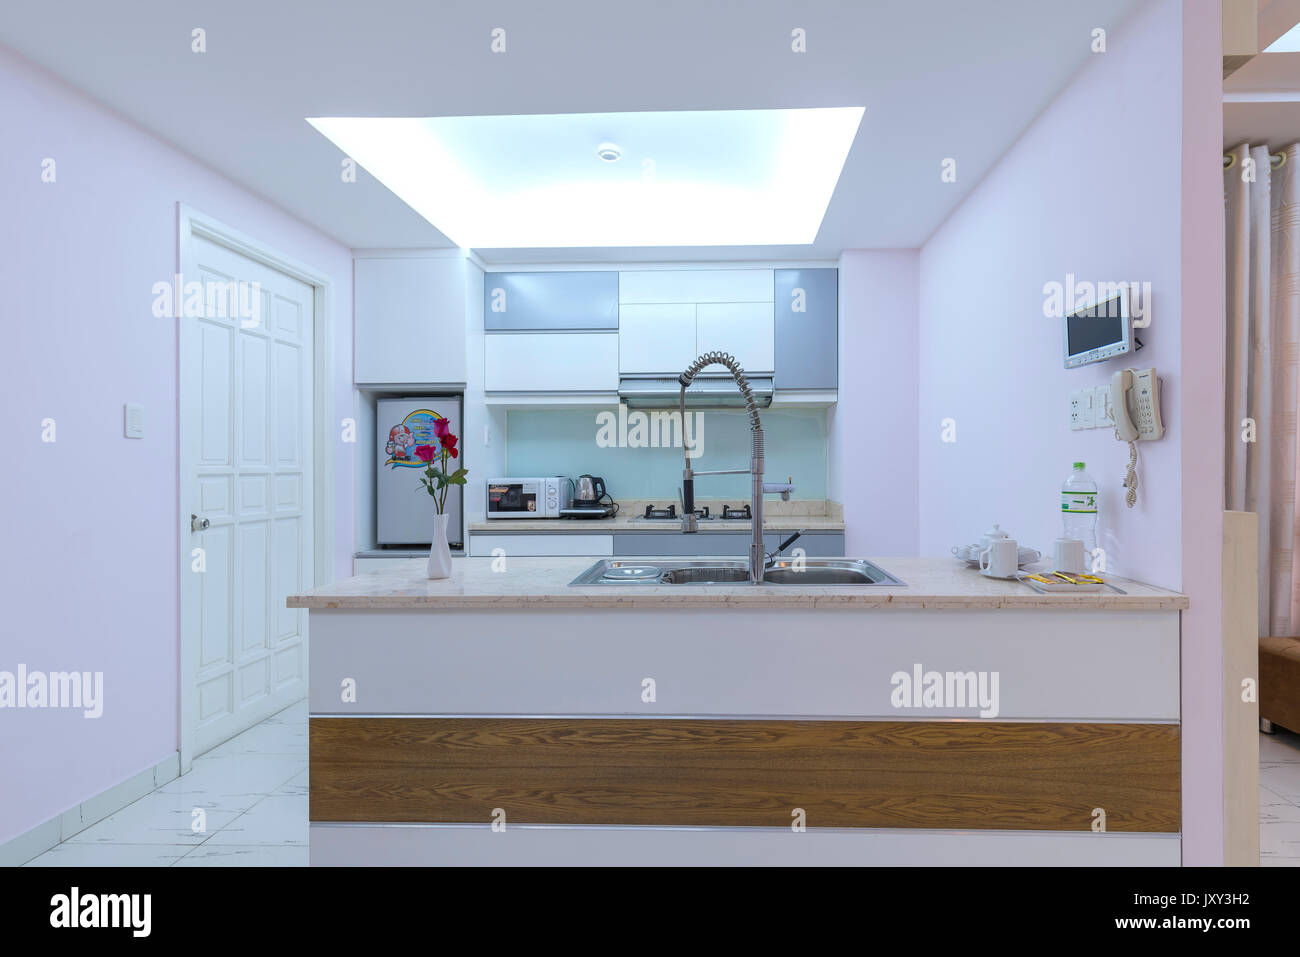 Ho Chi Minh City, Vietnam - May 5th, 2017: Modern dining room, kitchen in luxury apartments with airy, clean amenities, luxurious interior is dream of - Stock Image